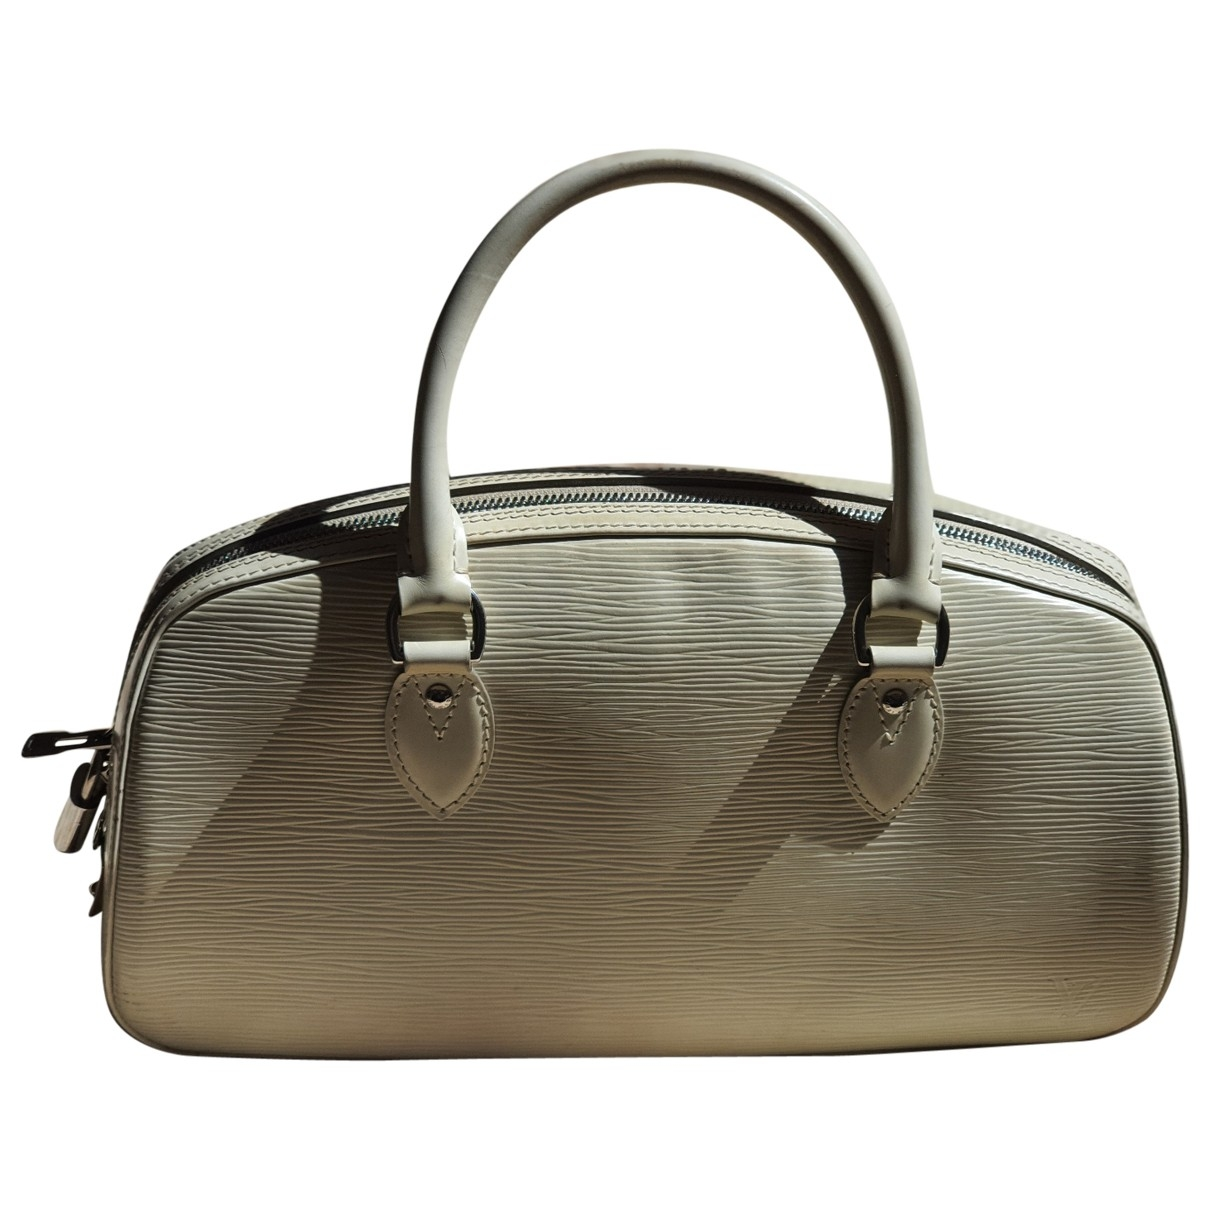 Louis Vuitton Jasmin White Leather handbag for Women \N